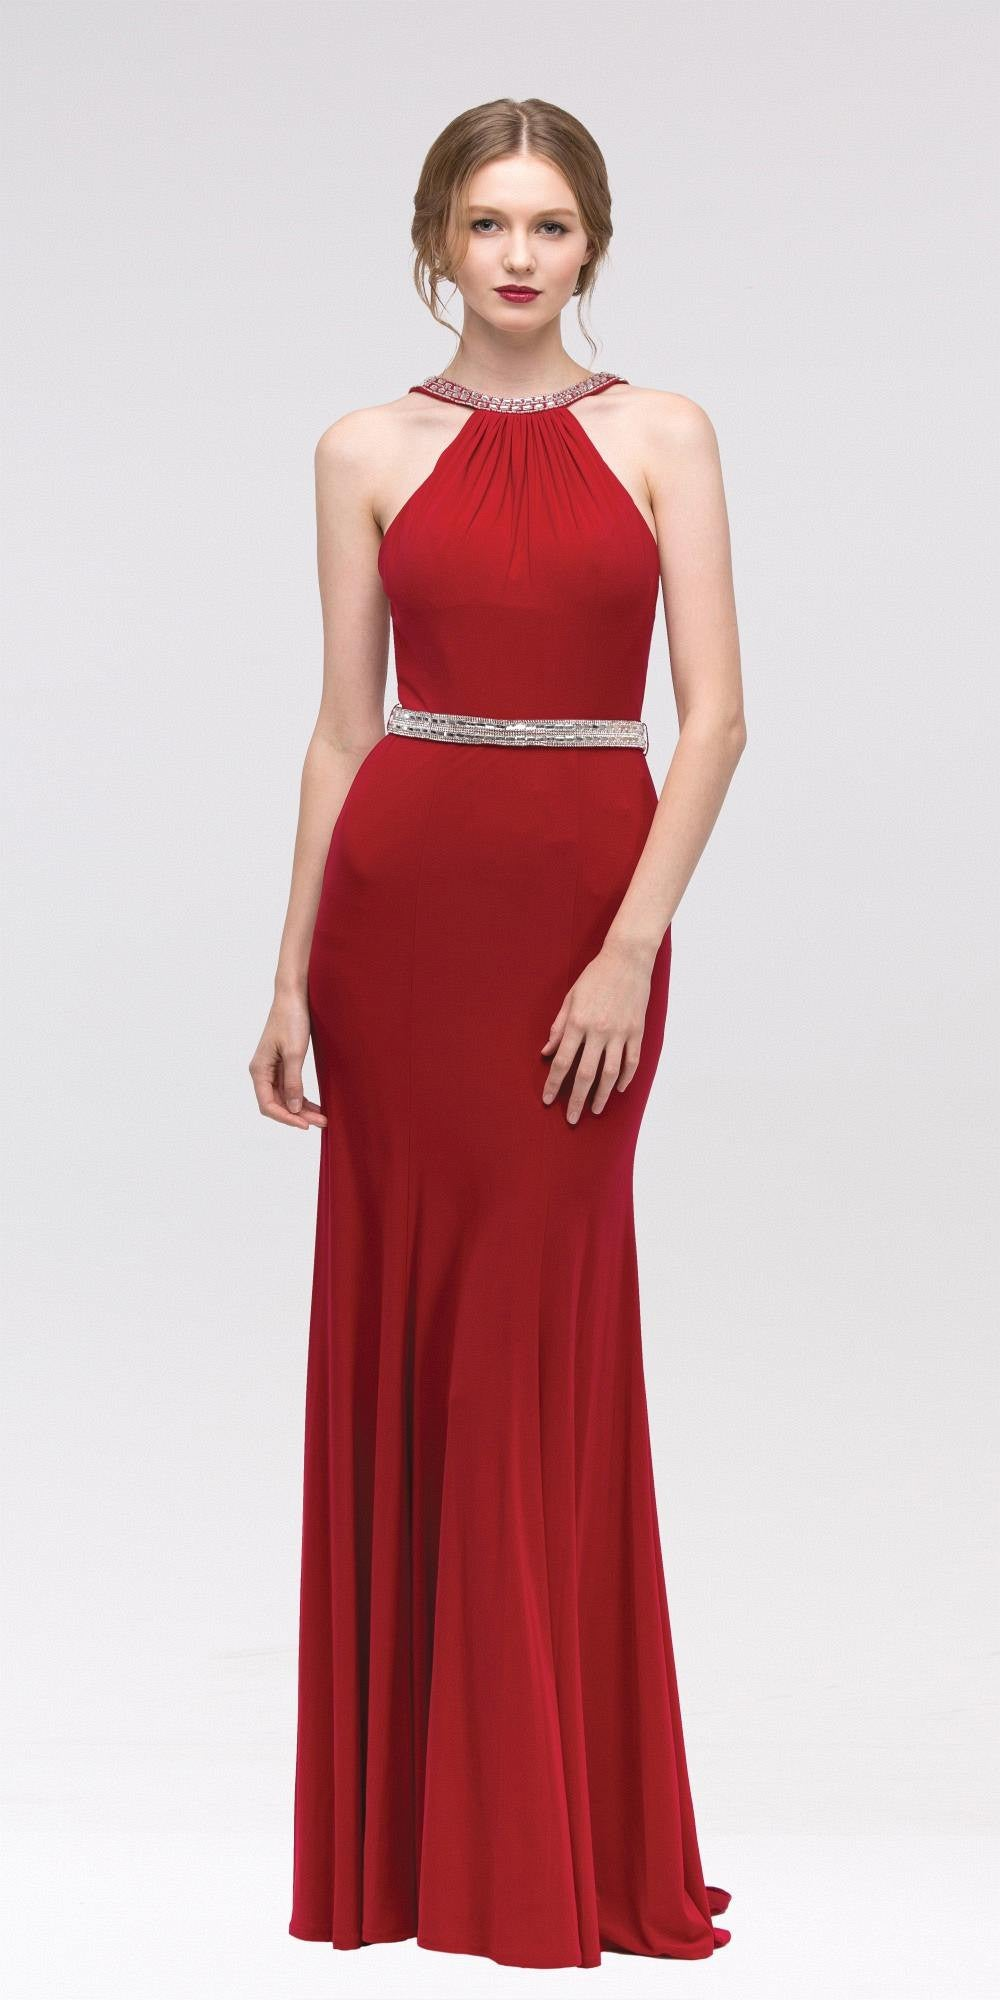 ... Red Halter Jeweled Neck and Waist Open Back Jersey Long Prom Dress ... 466965bc5